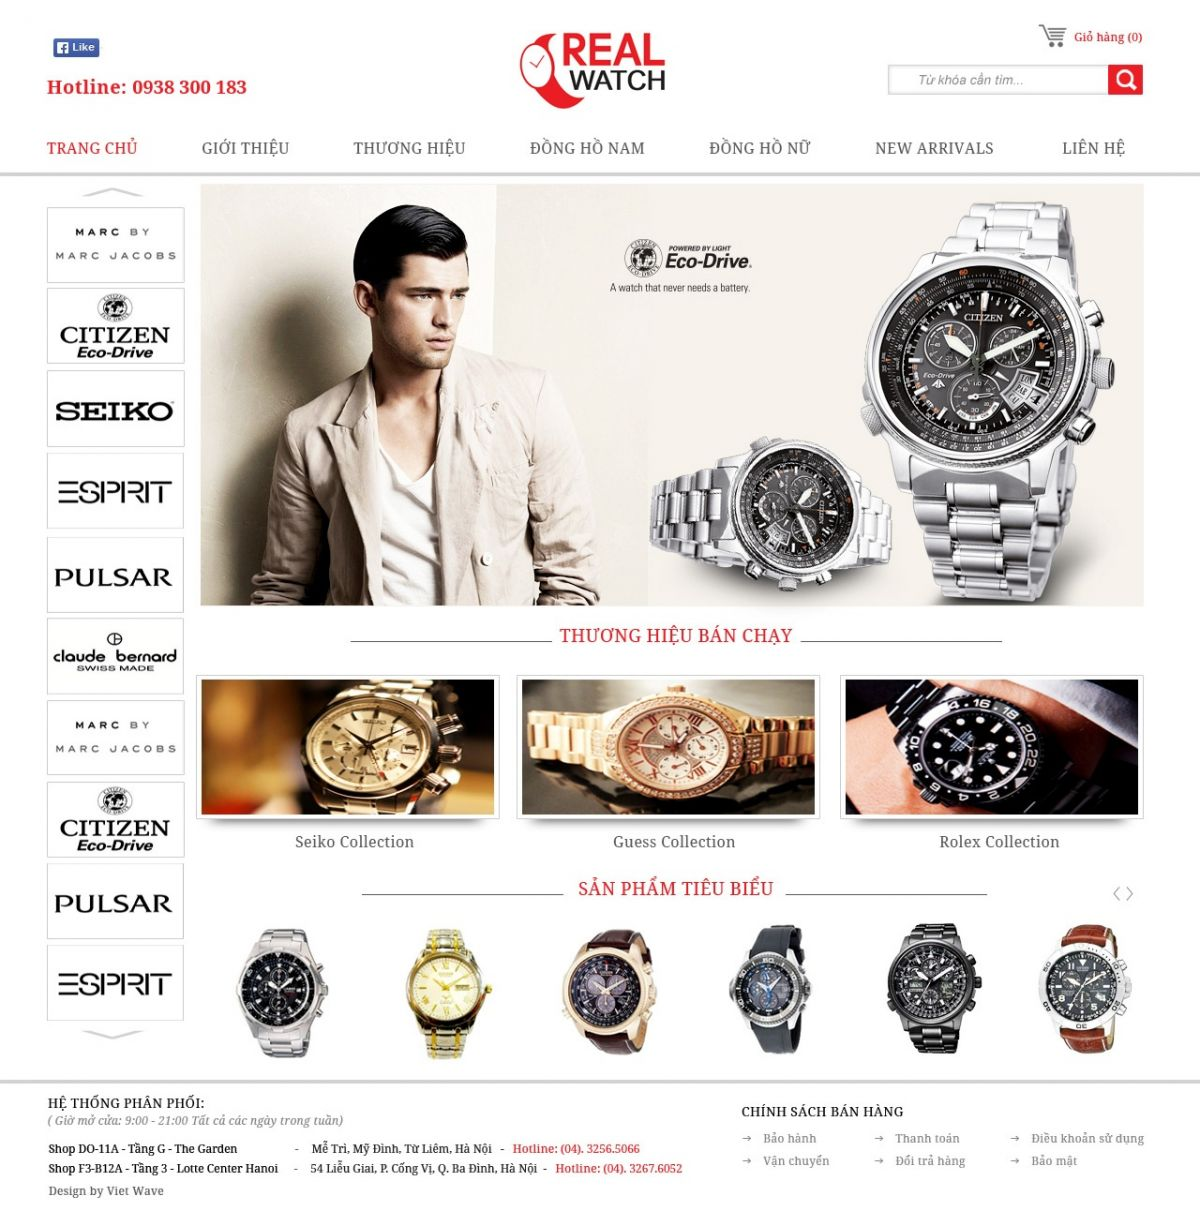 REALWATCH